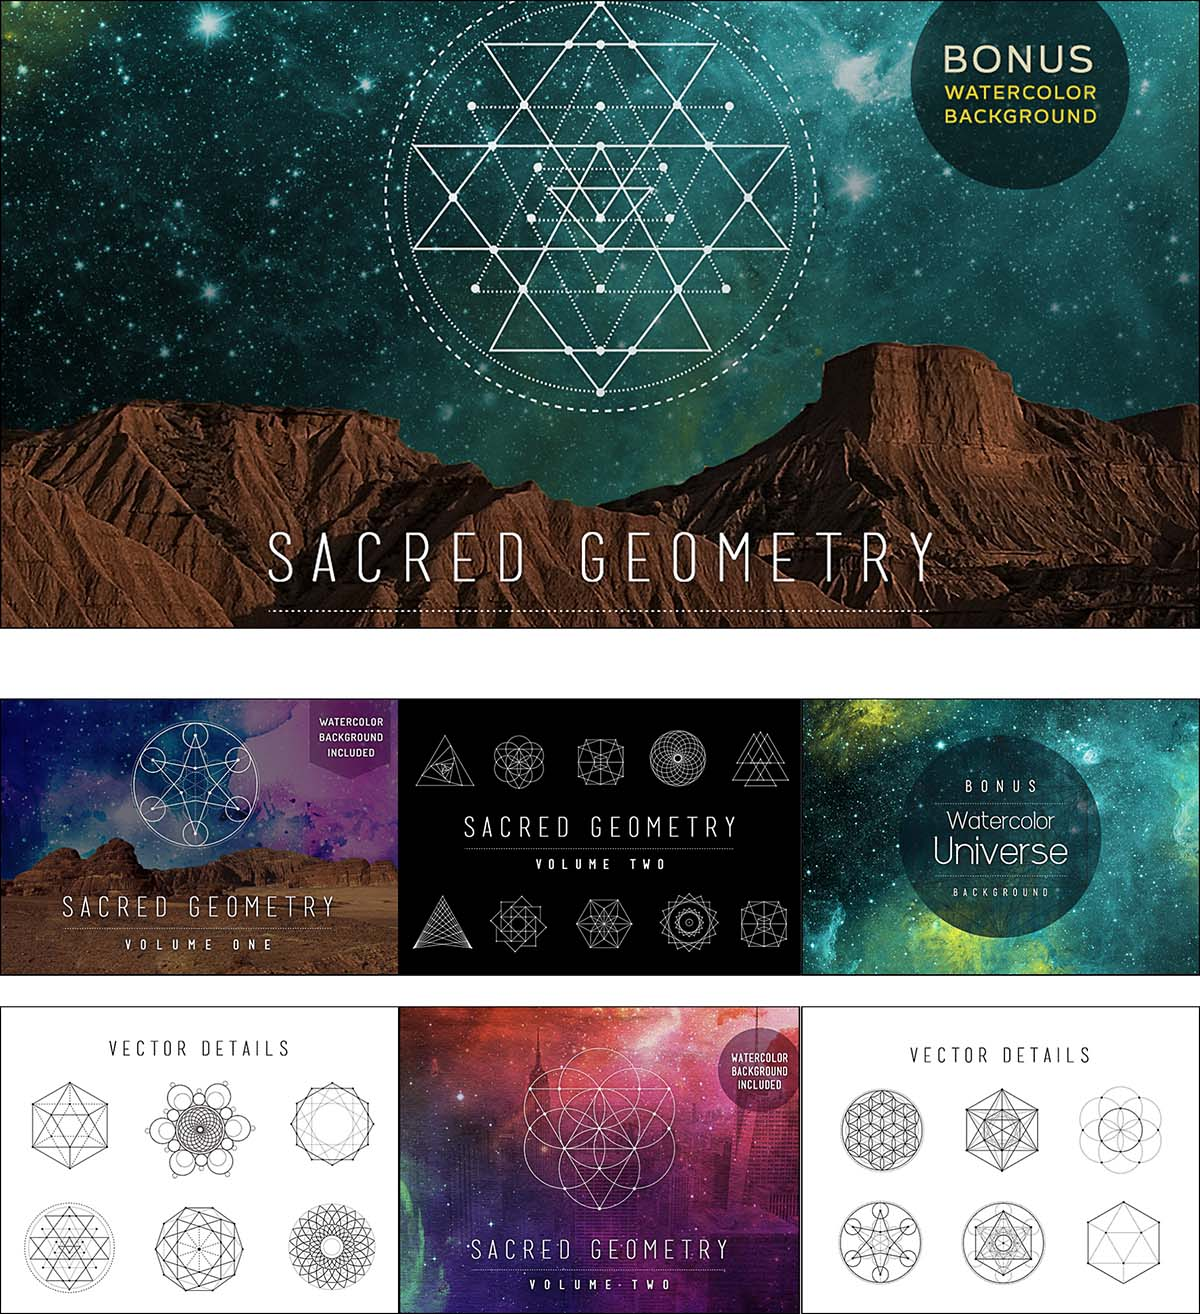 Sacred geometry vector set with universe background